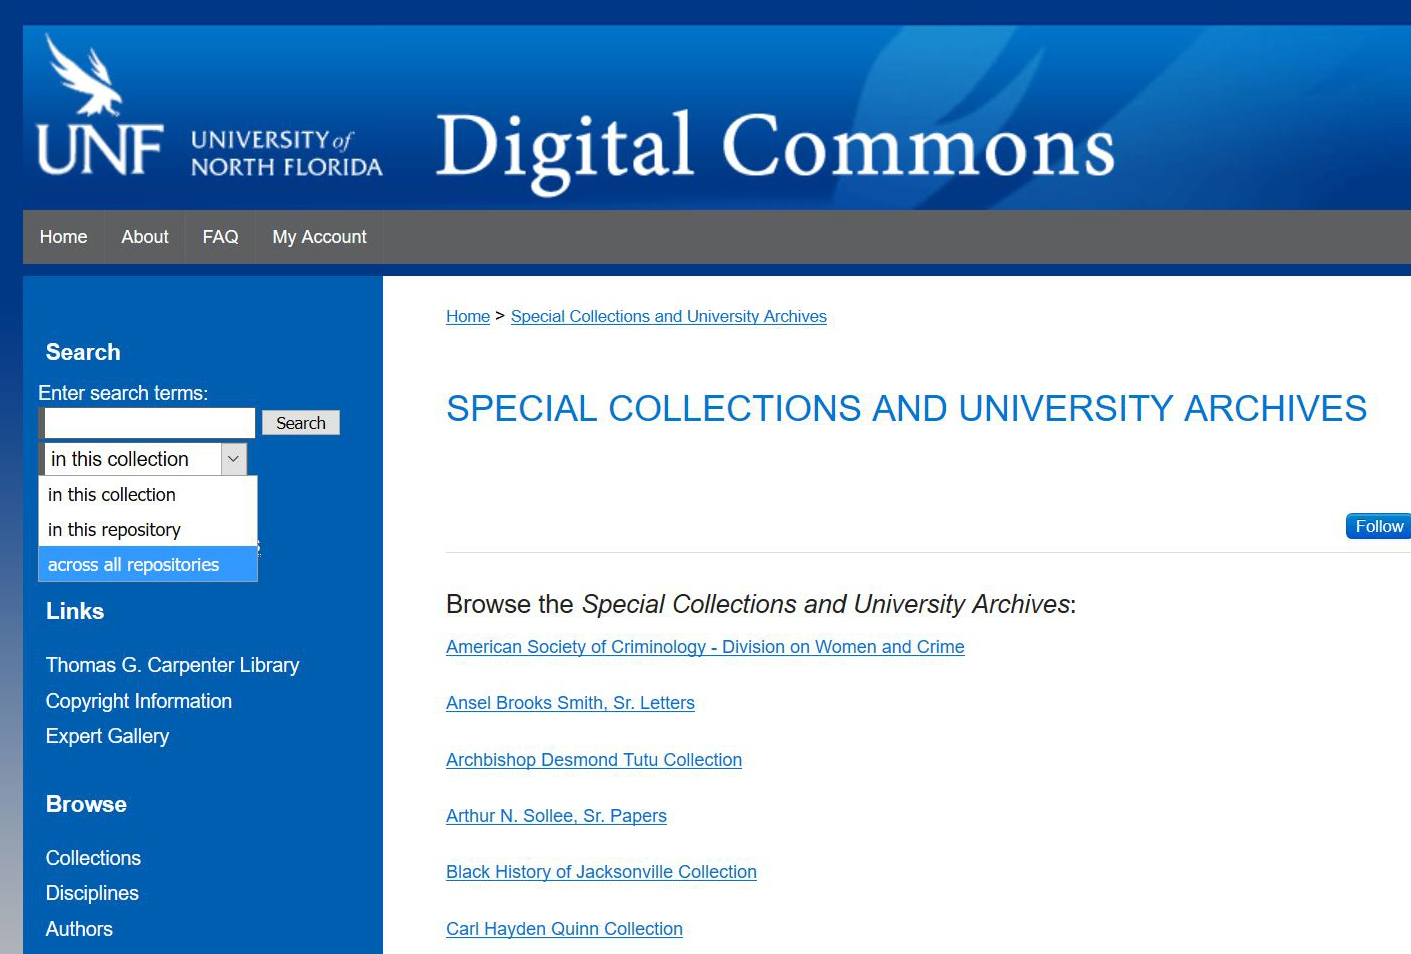 Screenshot of digital commons website